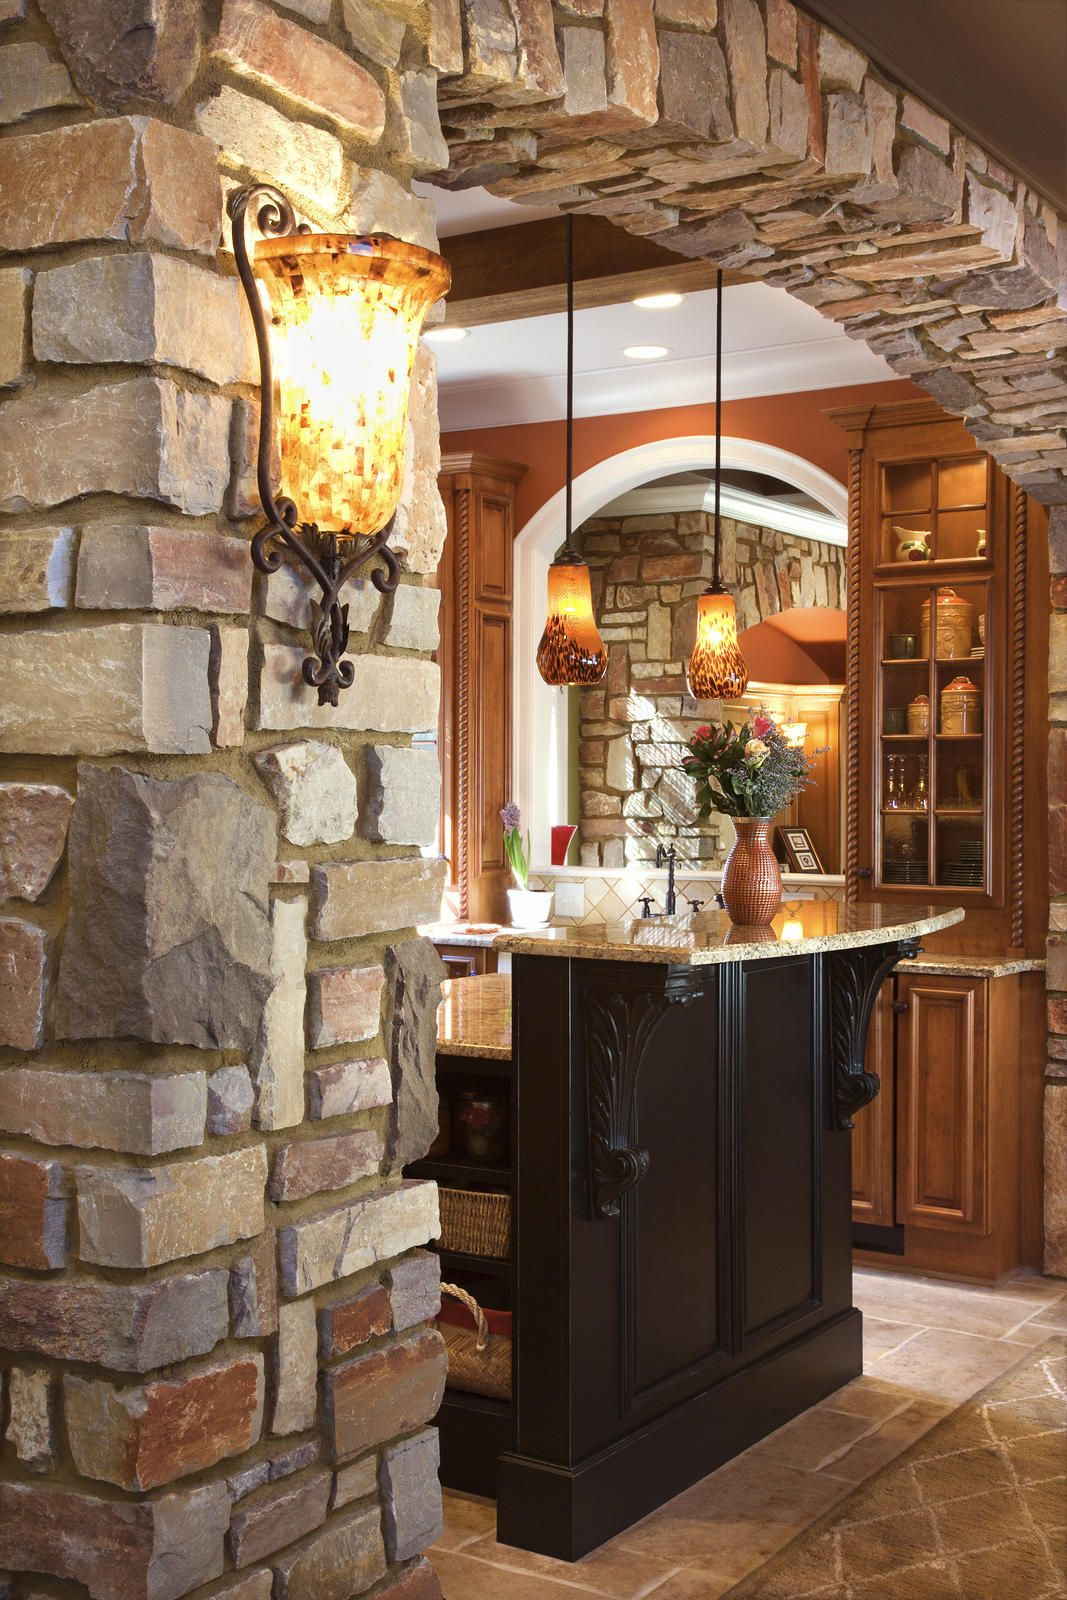 Stone Column And Arch Going To Kitchen Beautiful So